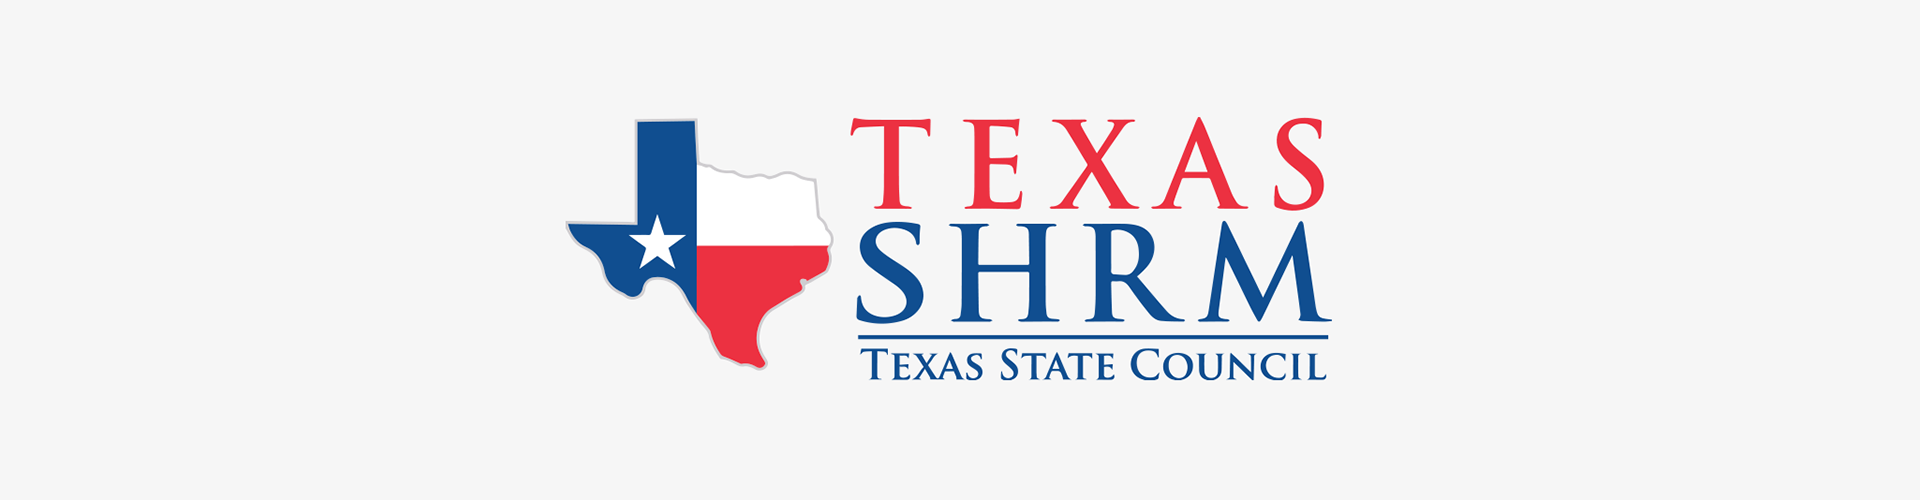 Texas SHRM » Society for Human Resource Management Texas.